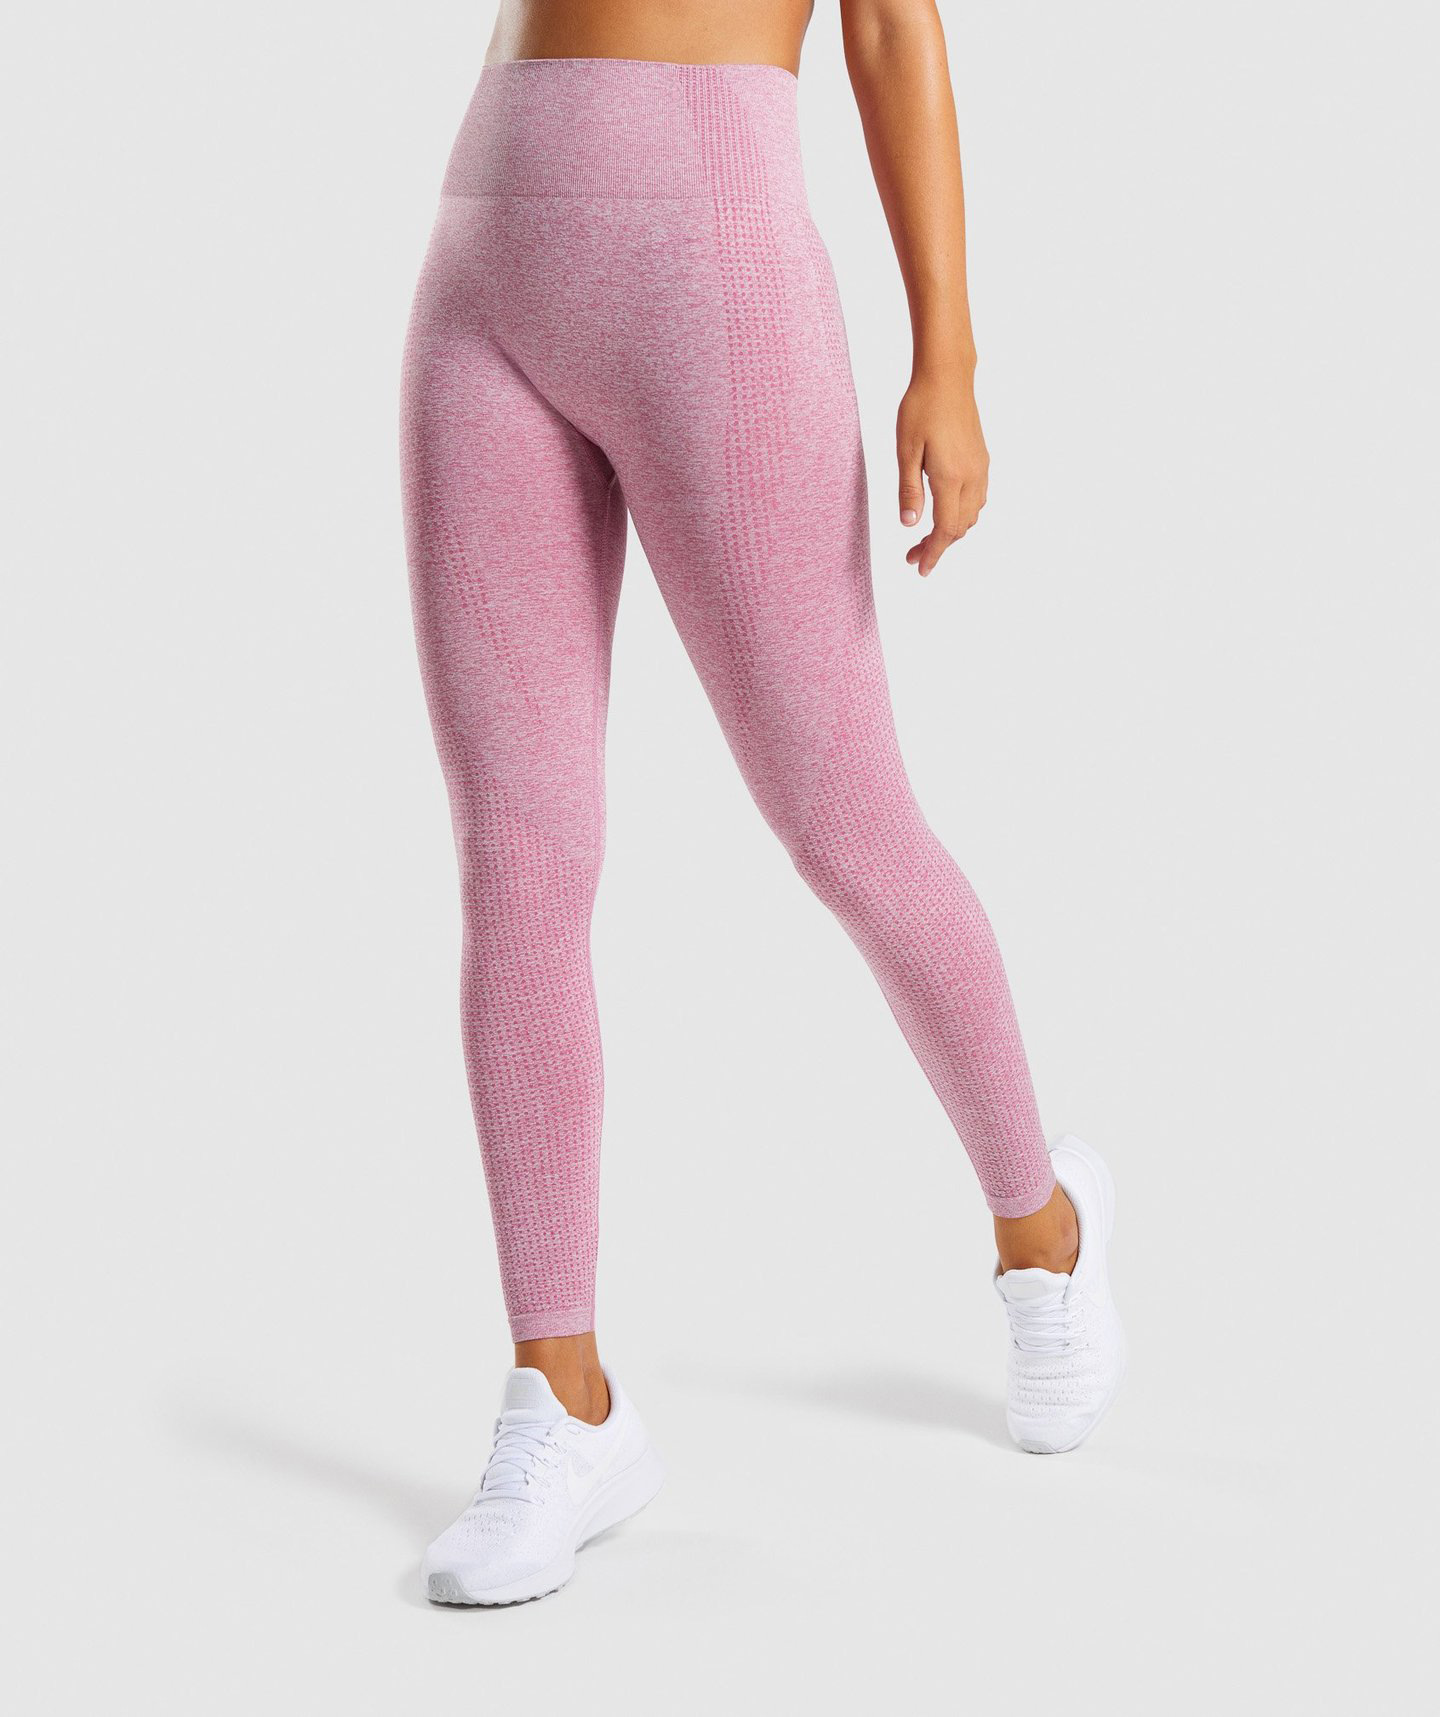 Vital_Seamless_Leggings_-_Dusk